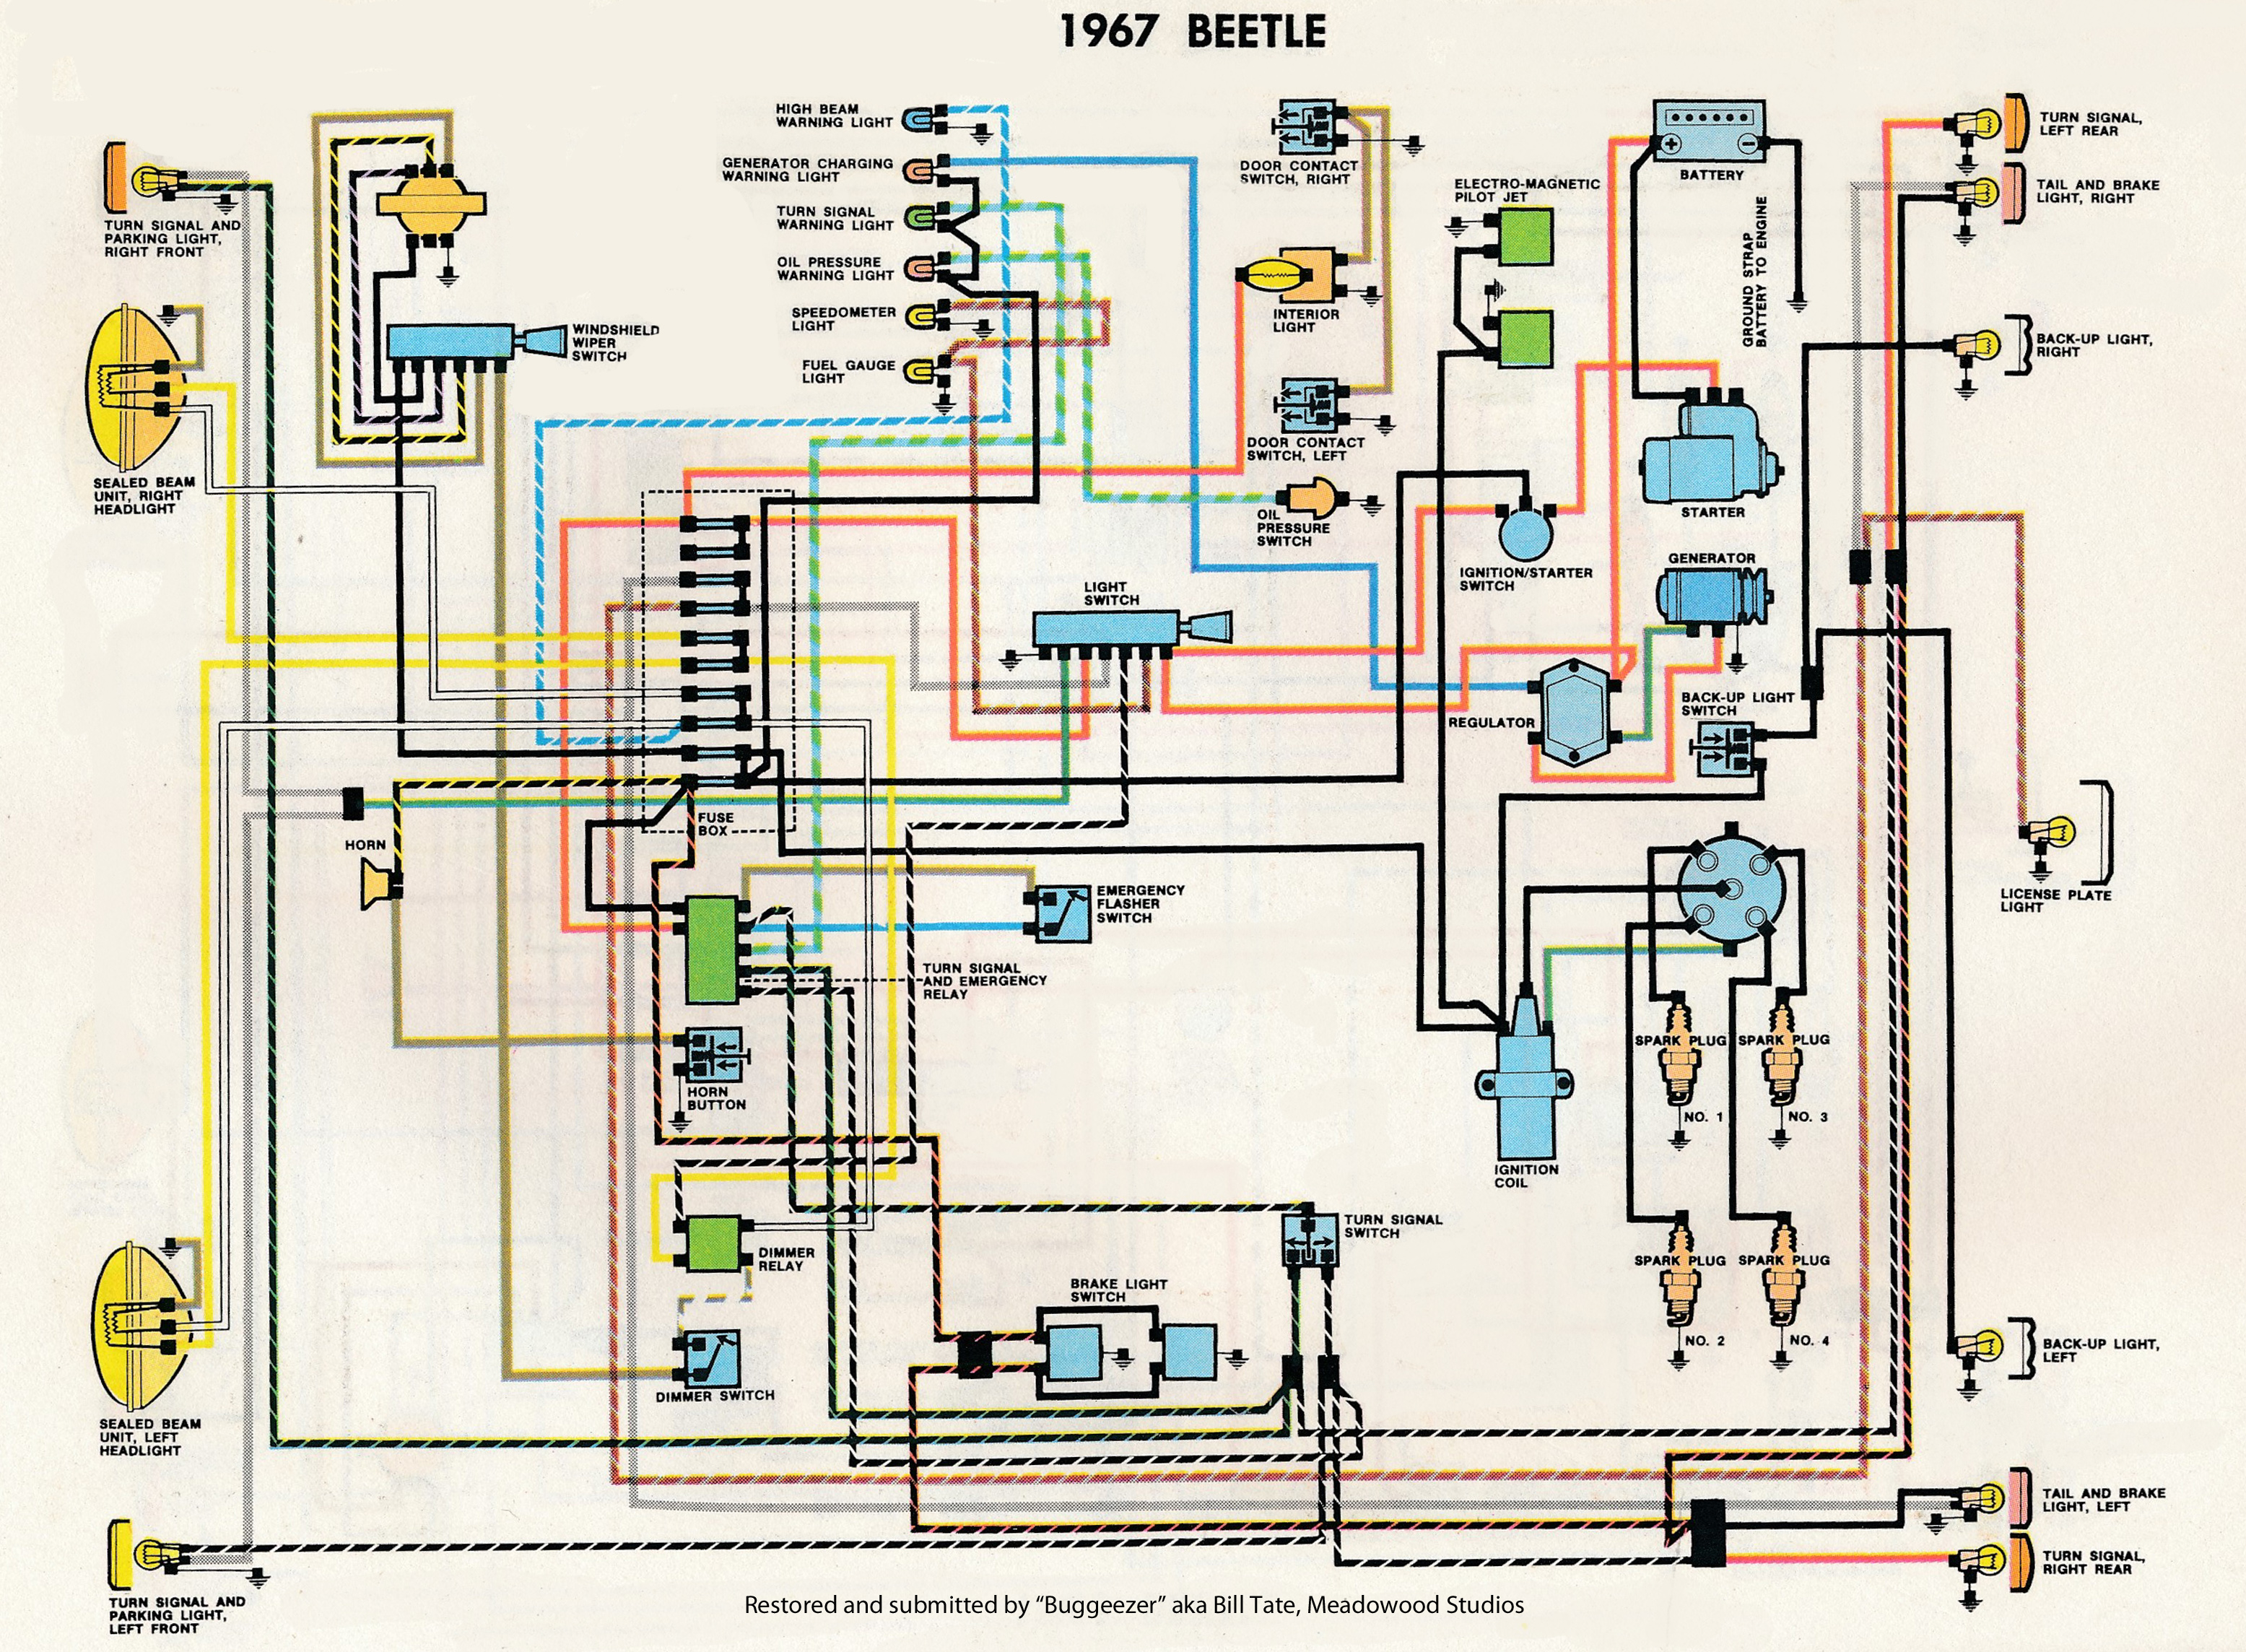 1972 Vw Beetle Wiring Diagram Reinvent Your Pentair Challenger Thesamba Com Type 1 Diagrams Rh Alternator